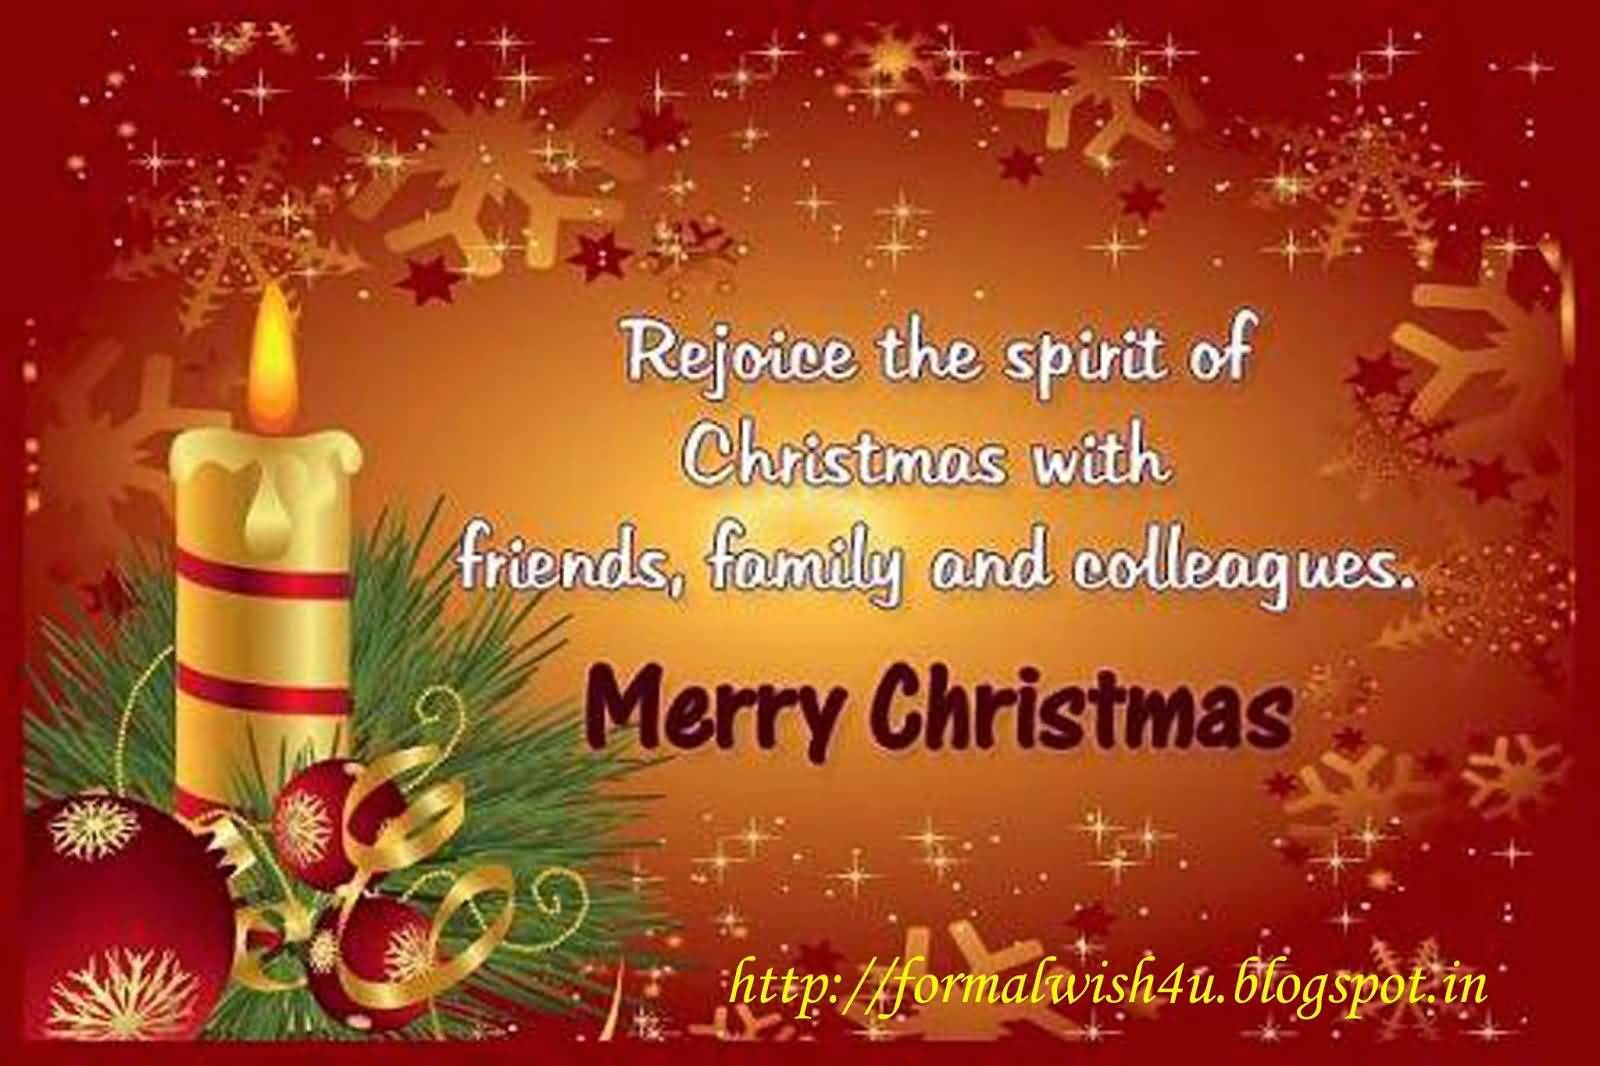 Rejoice The Spirit Of Christmas With Friends, Family And Colleagues ...